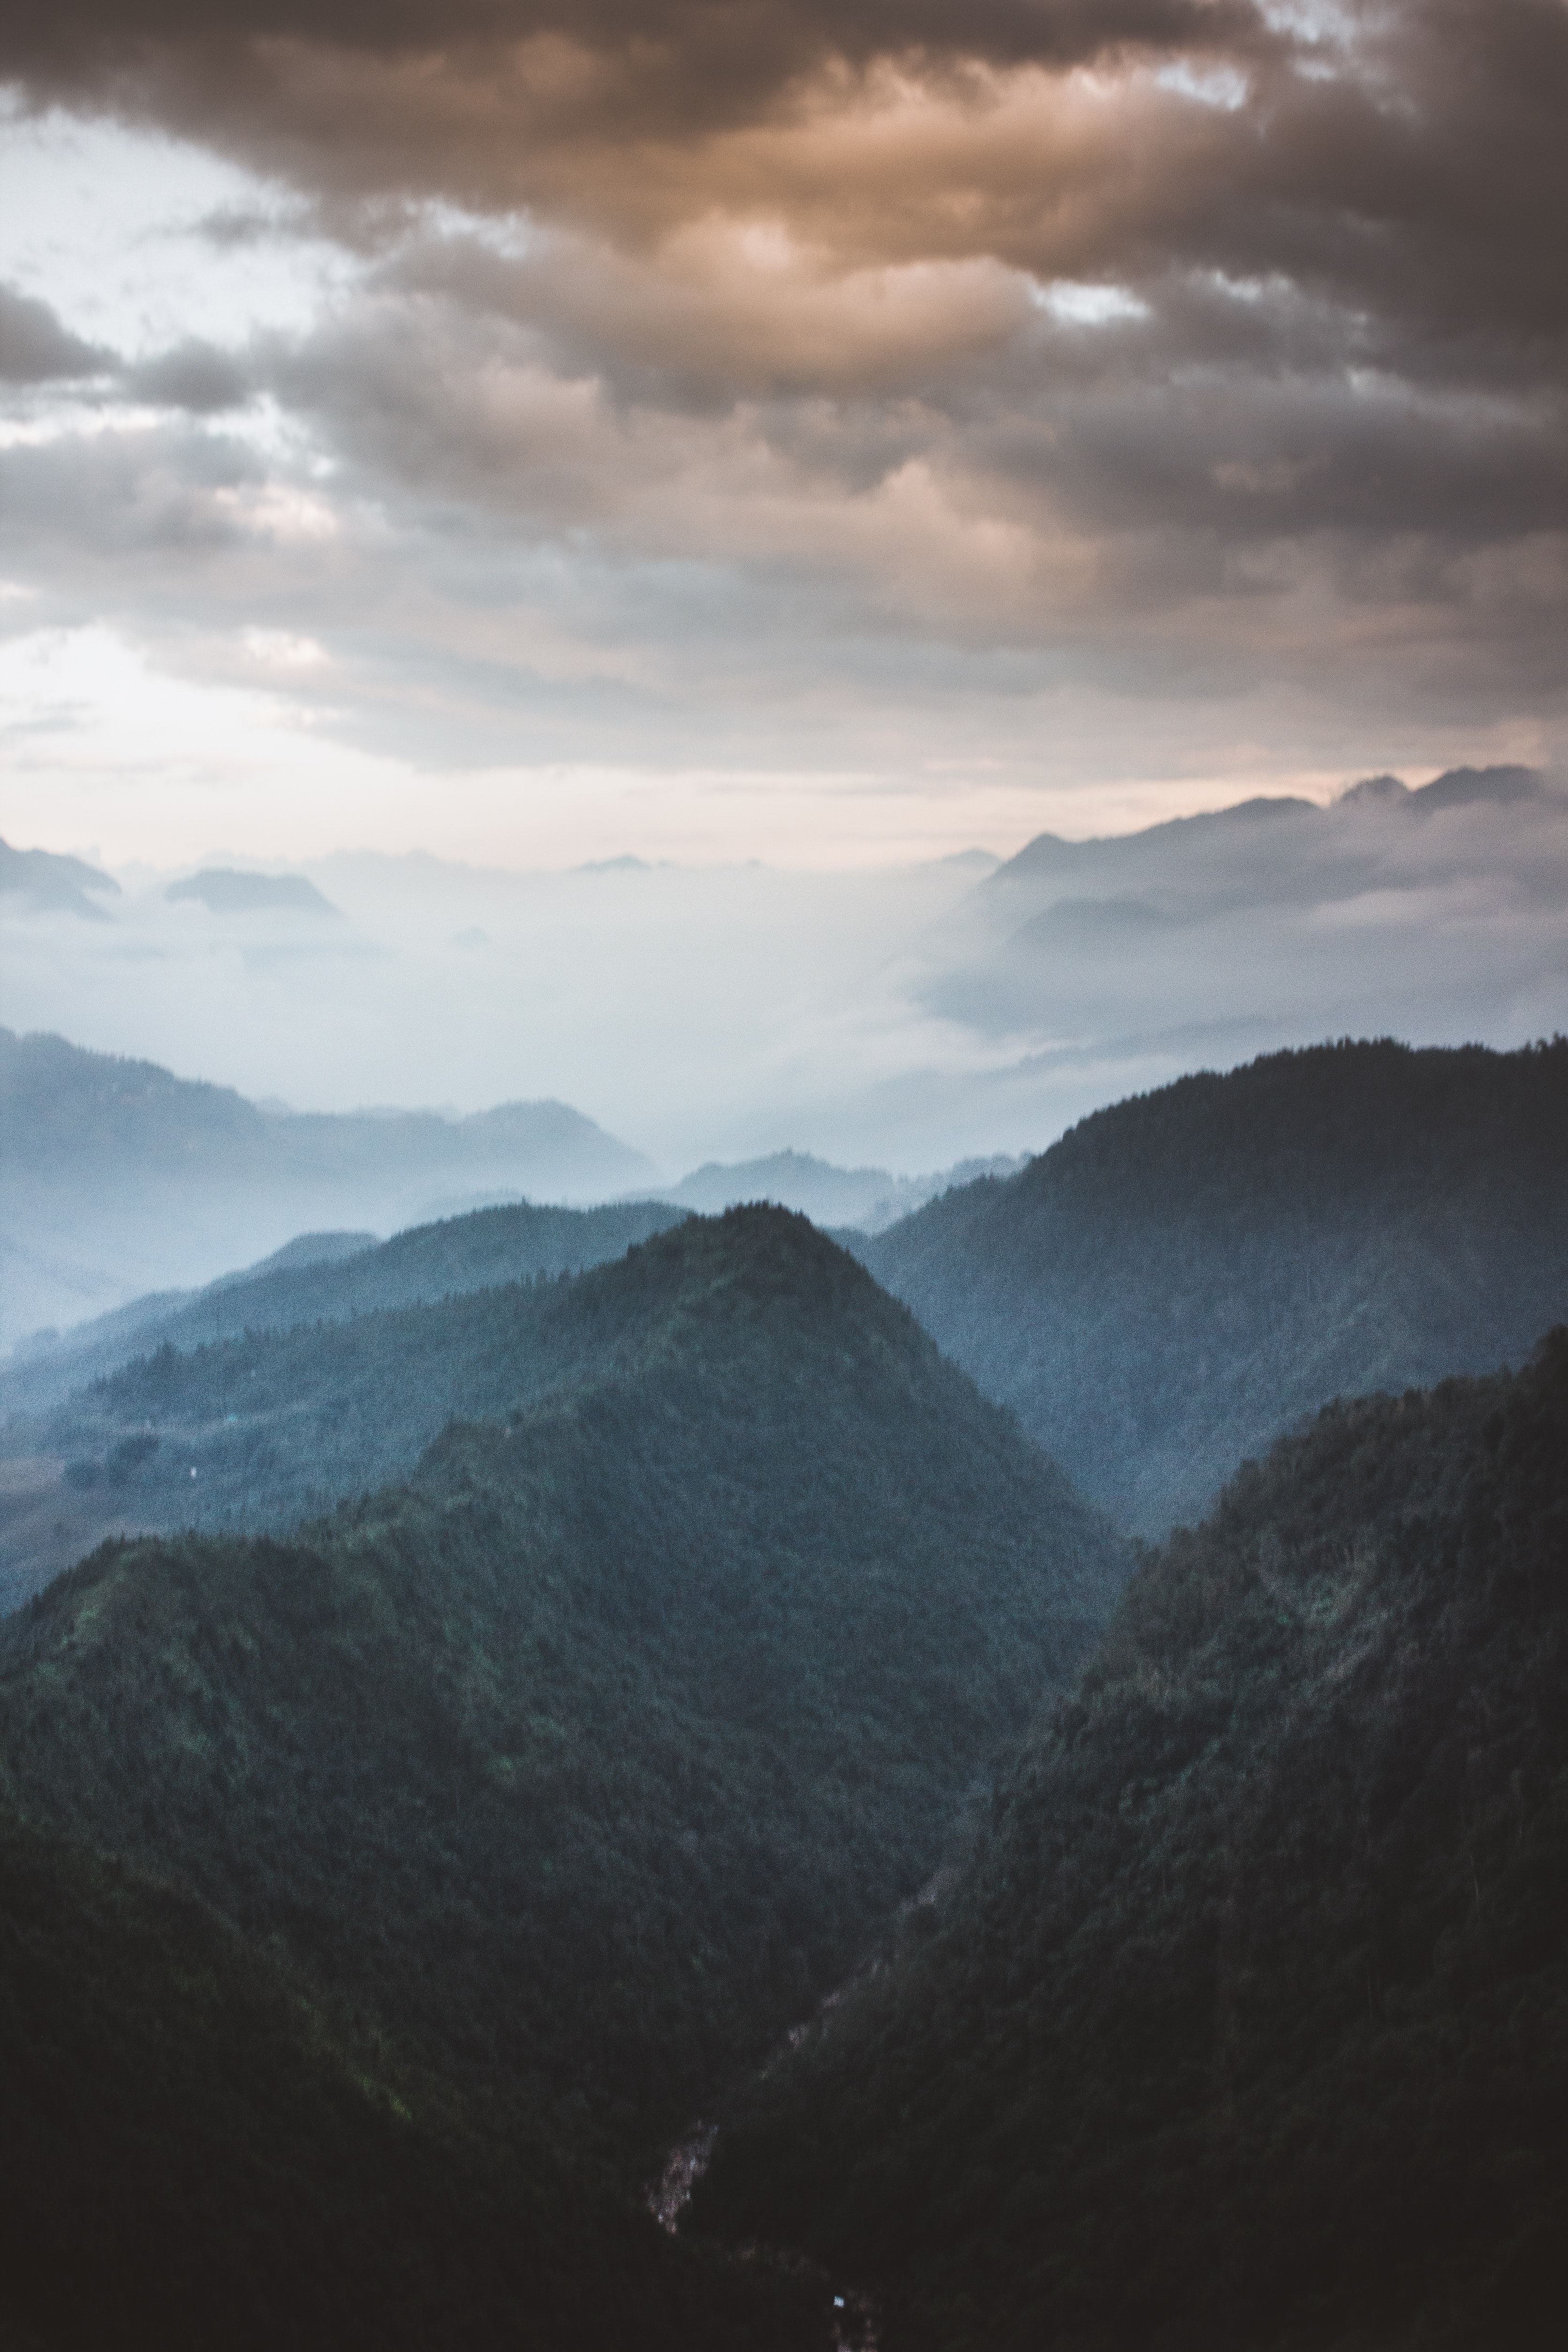 bird's-eye view photography of mountain valley with clouds